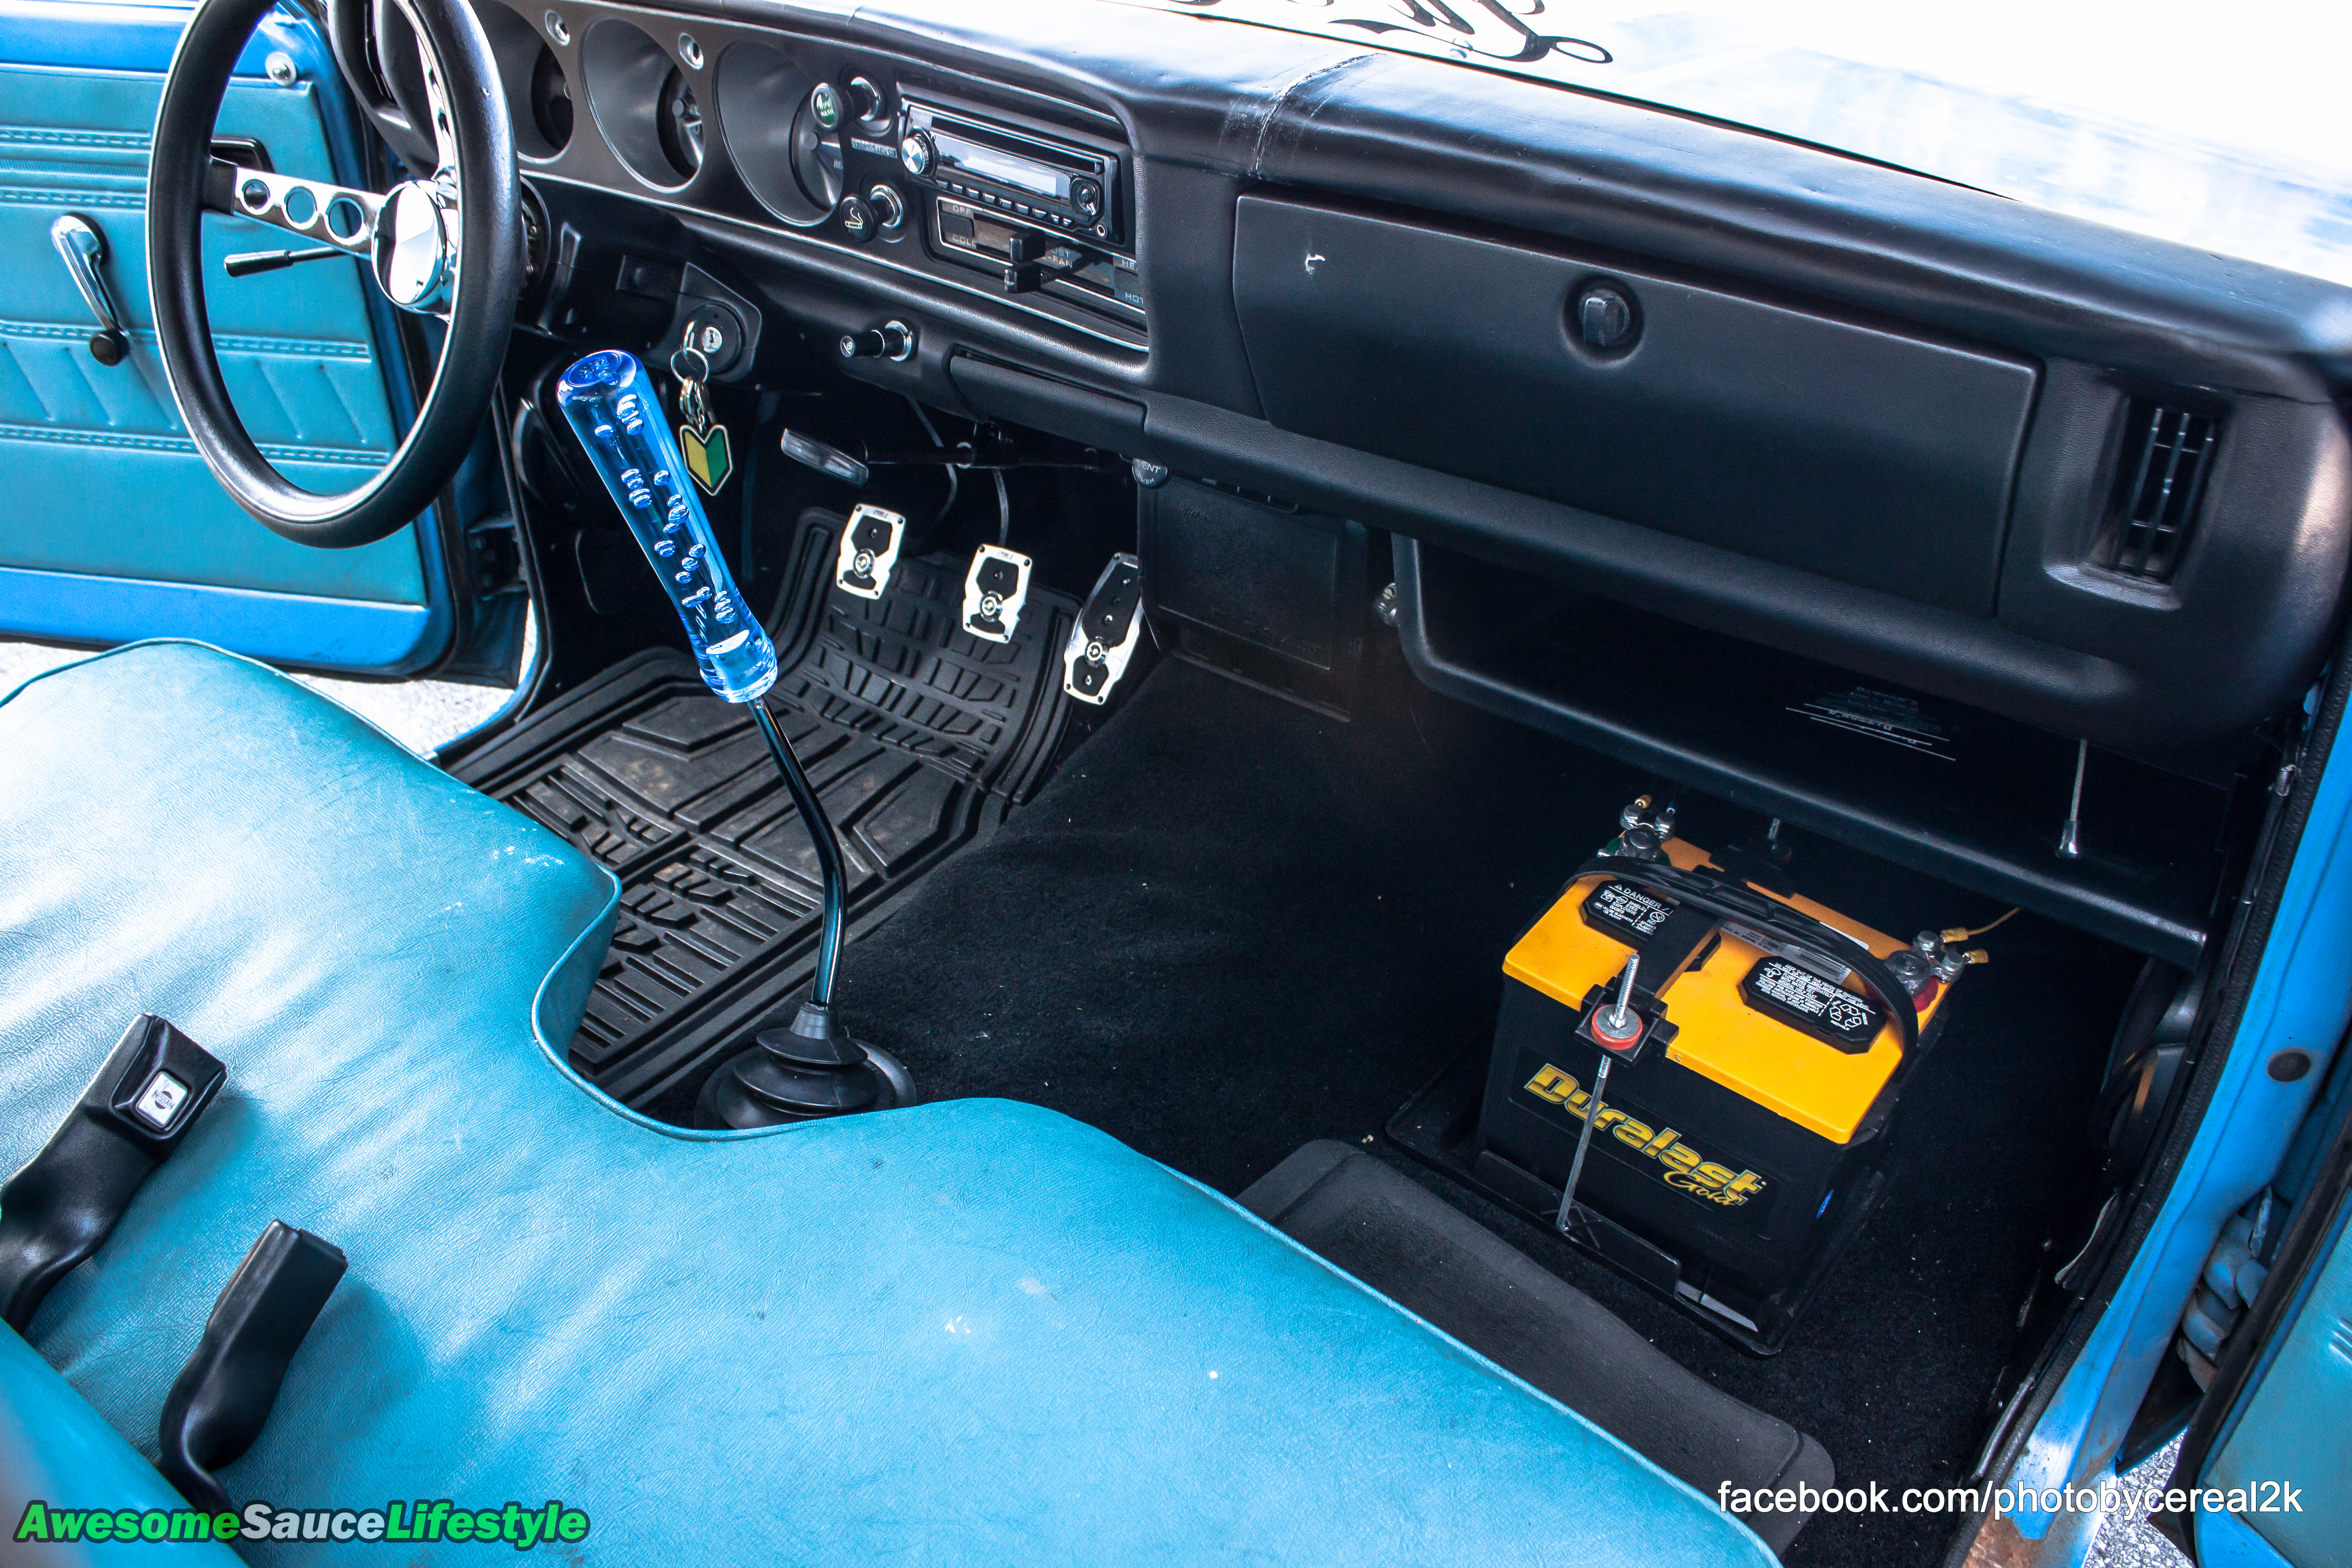 feature 1974 nissan datsun pickup truck awesomesaucelifestyle